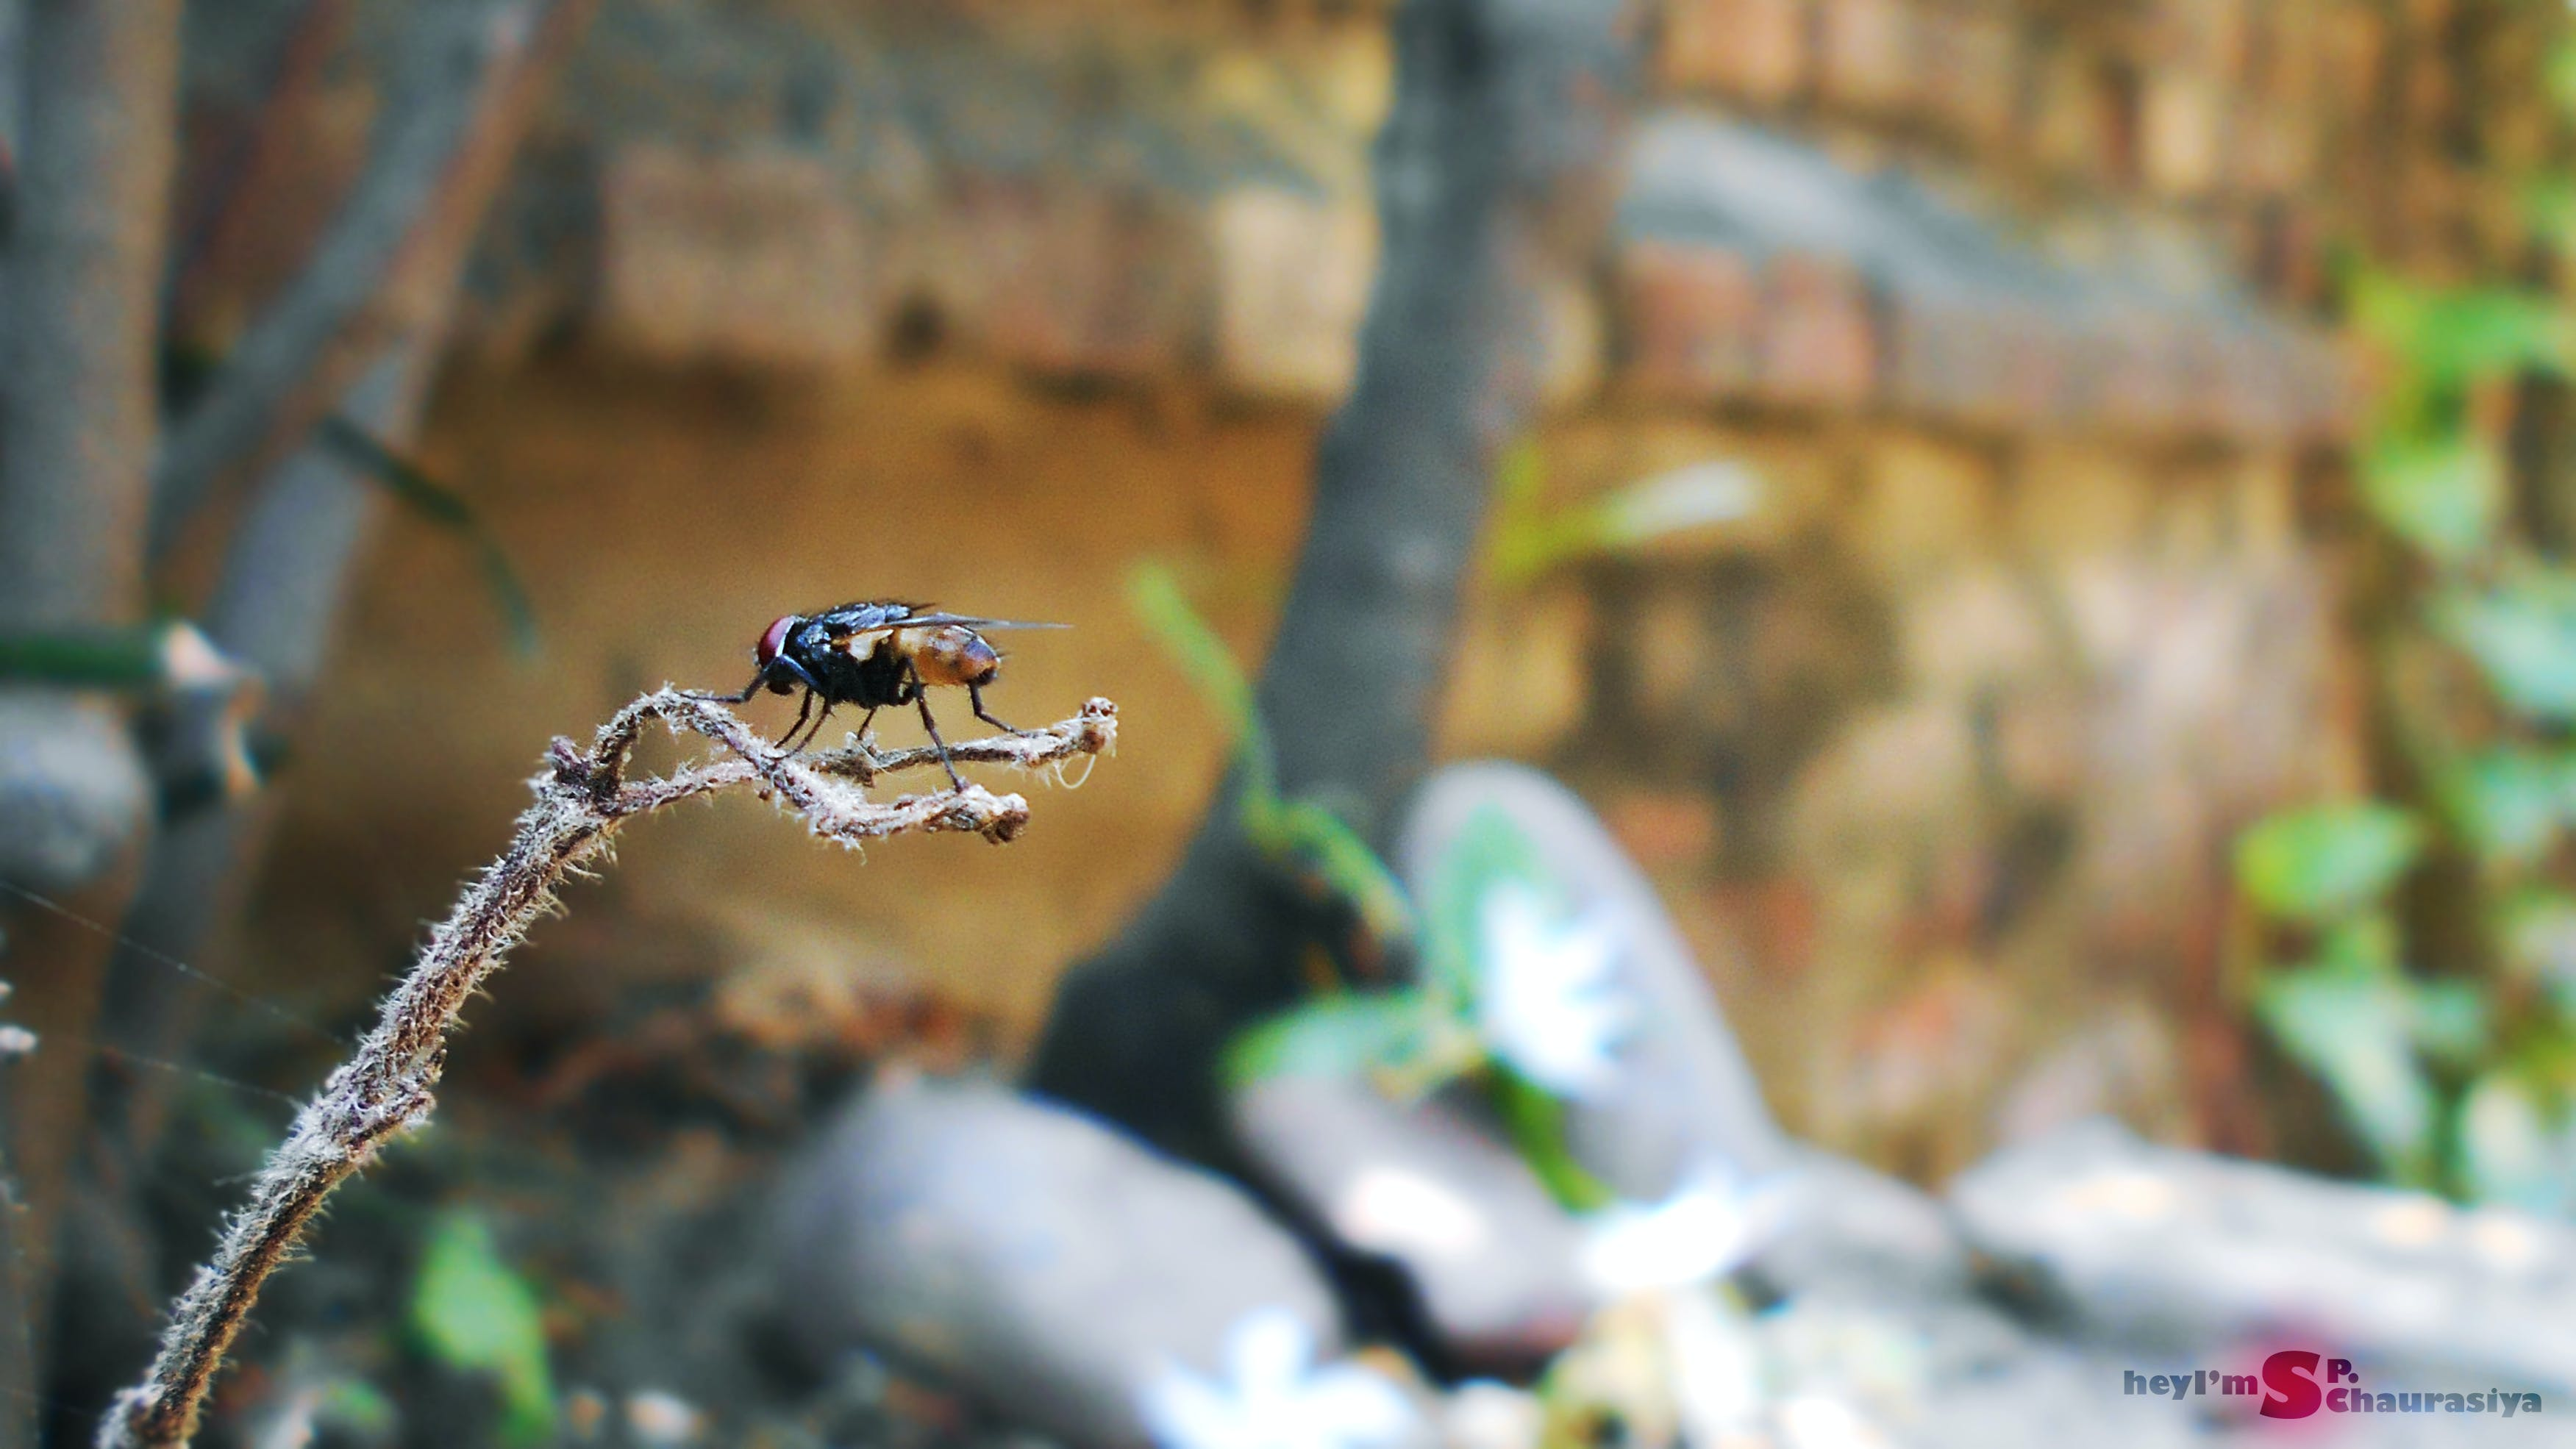 Free stock photo of background blur, garden, house fly, insect